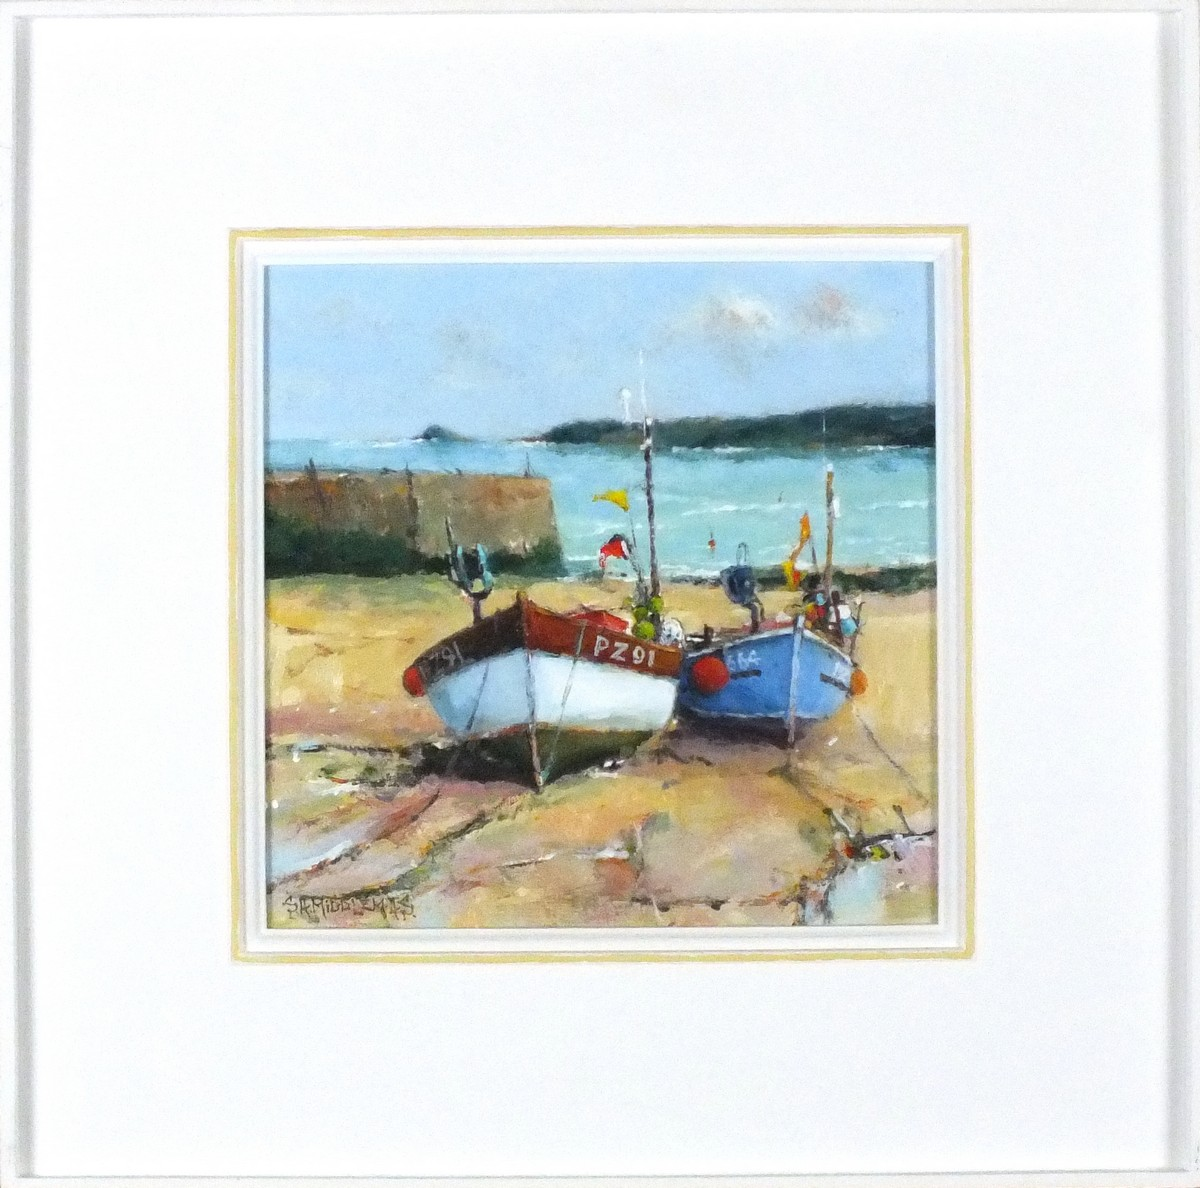 Lot 52 - * Stewart MIDDLEMAS (b.1944), Oil on board, 'Two Boats Sennen', Inscribed & dated 2011 to verso,